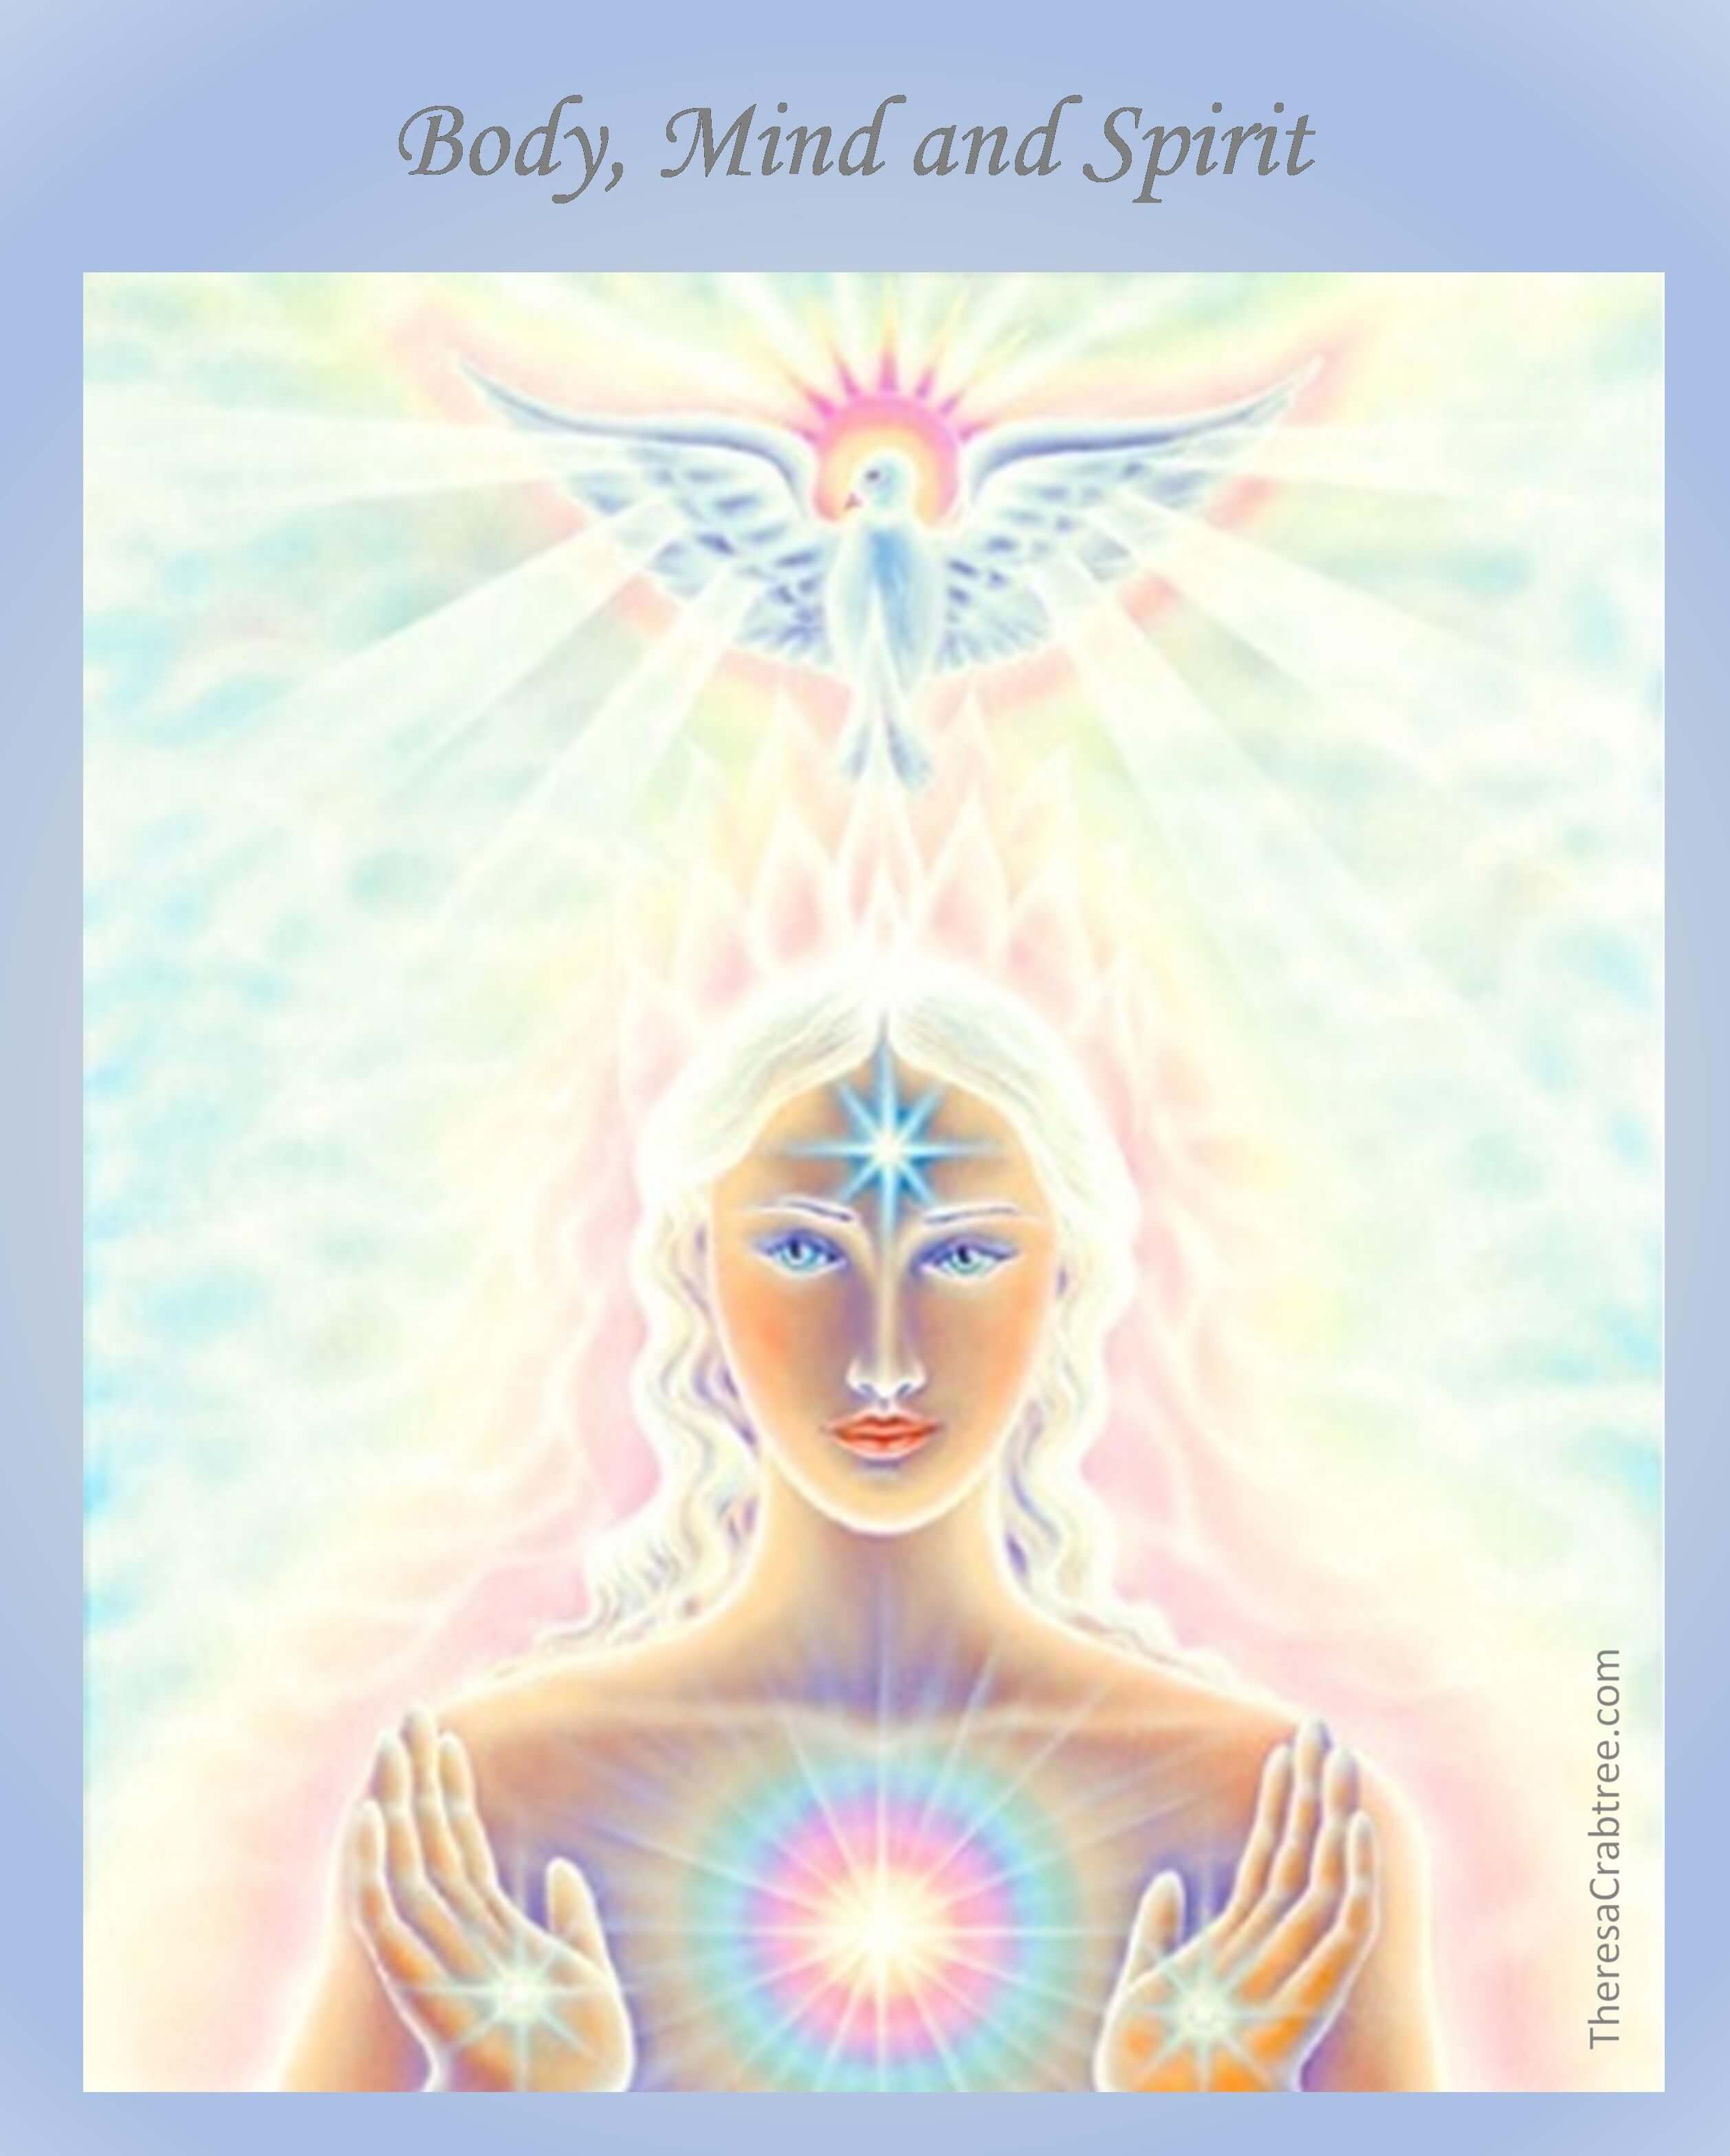 Soul Connection 3 ~  Body, Mind and Spirit